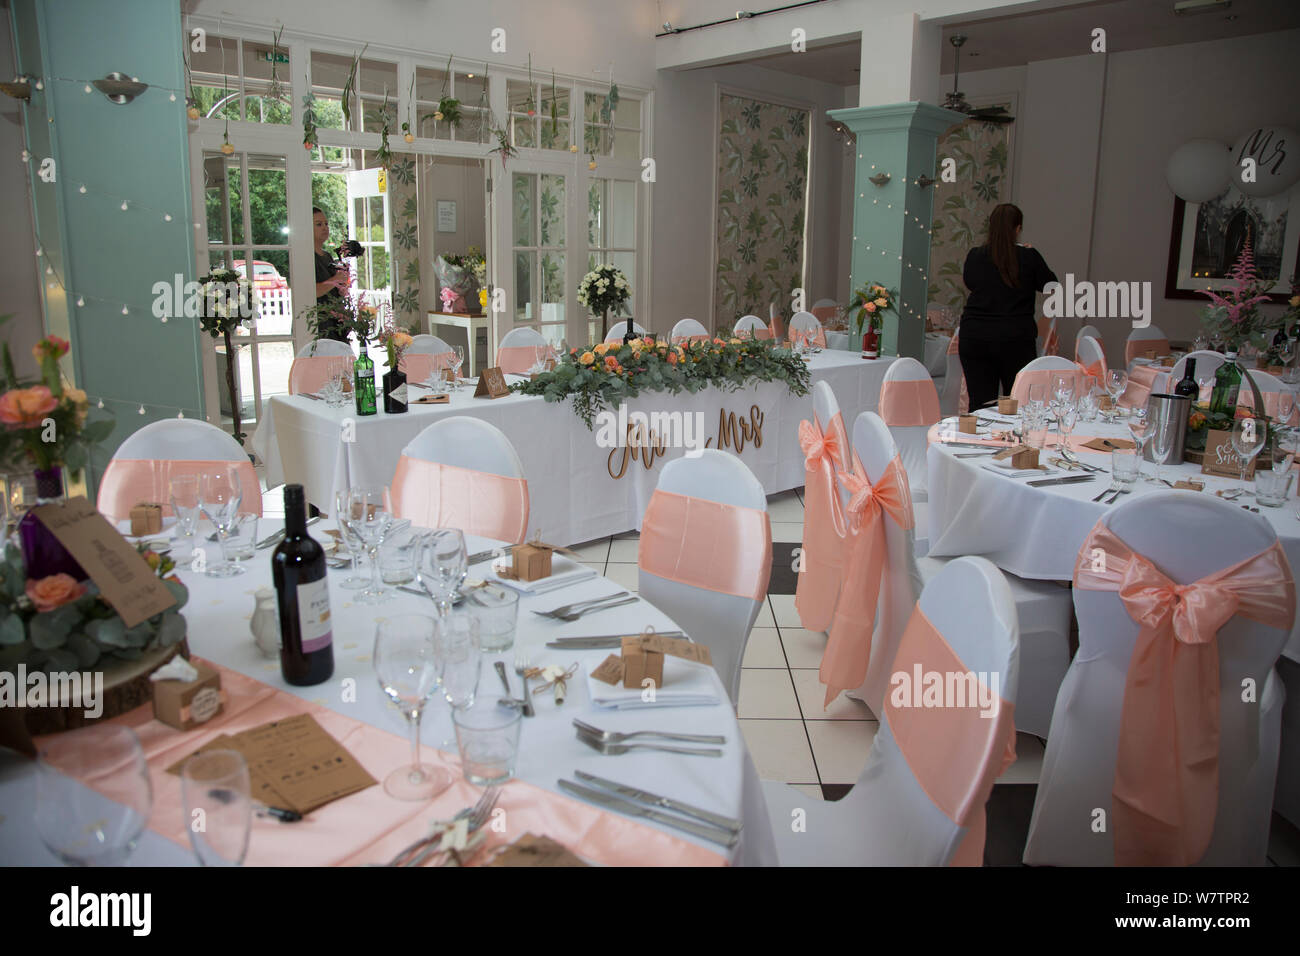 Wedding Reception Room With No People Showing All Of The